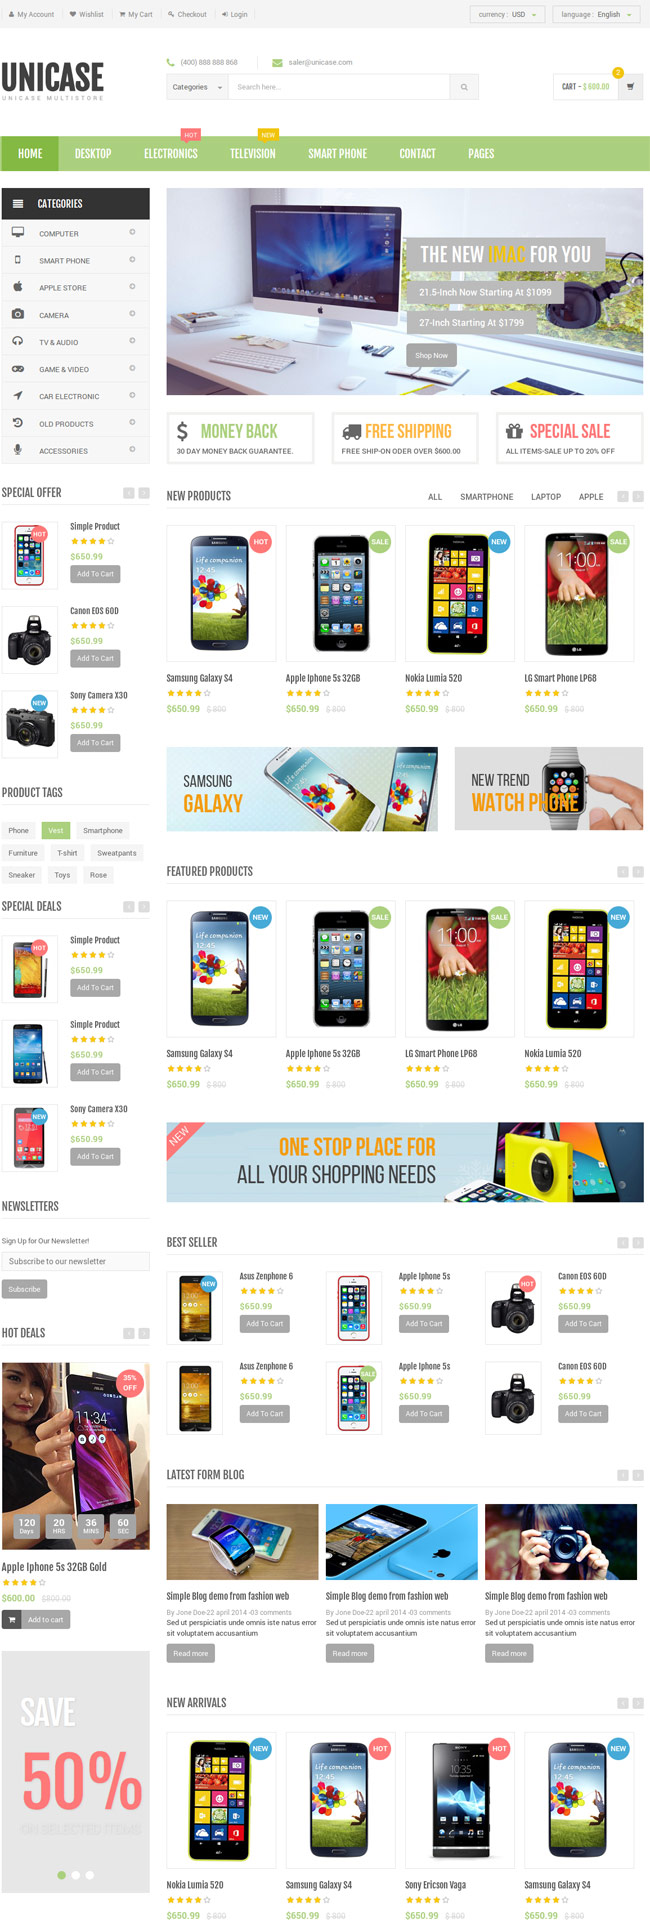 Unicase-Electronics-eCommerce-HTML-Template